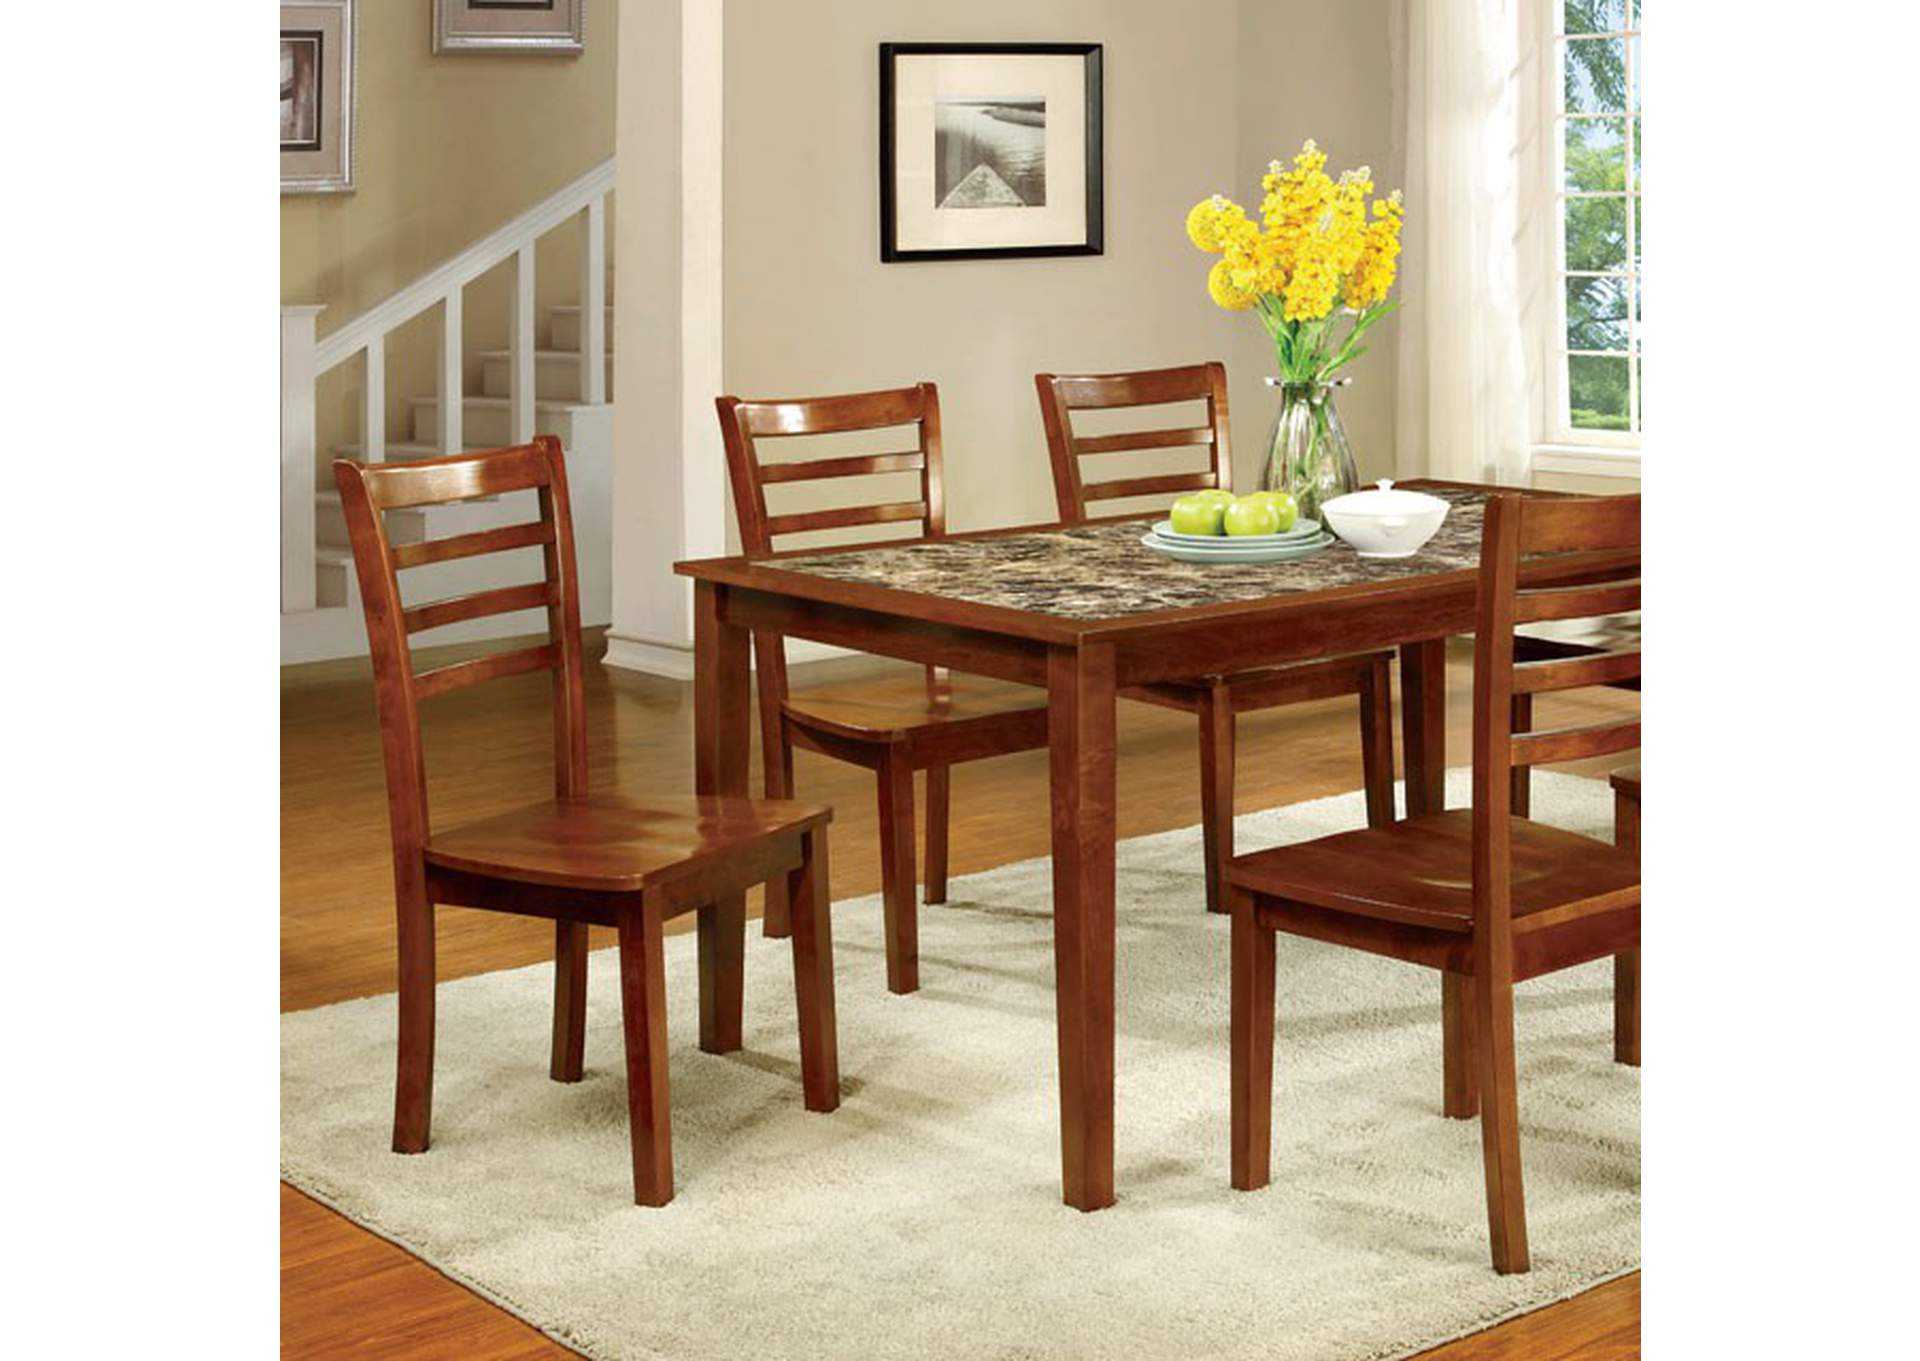 Fordville I Antique Oak 7 Piece. Dining Set,Furniture of America